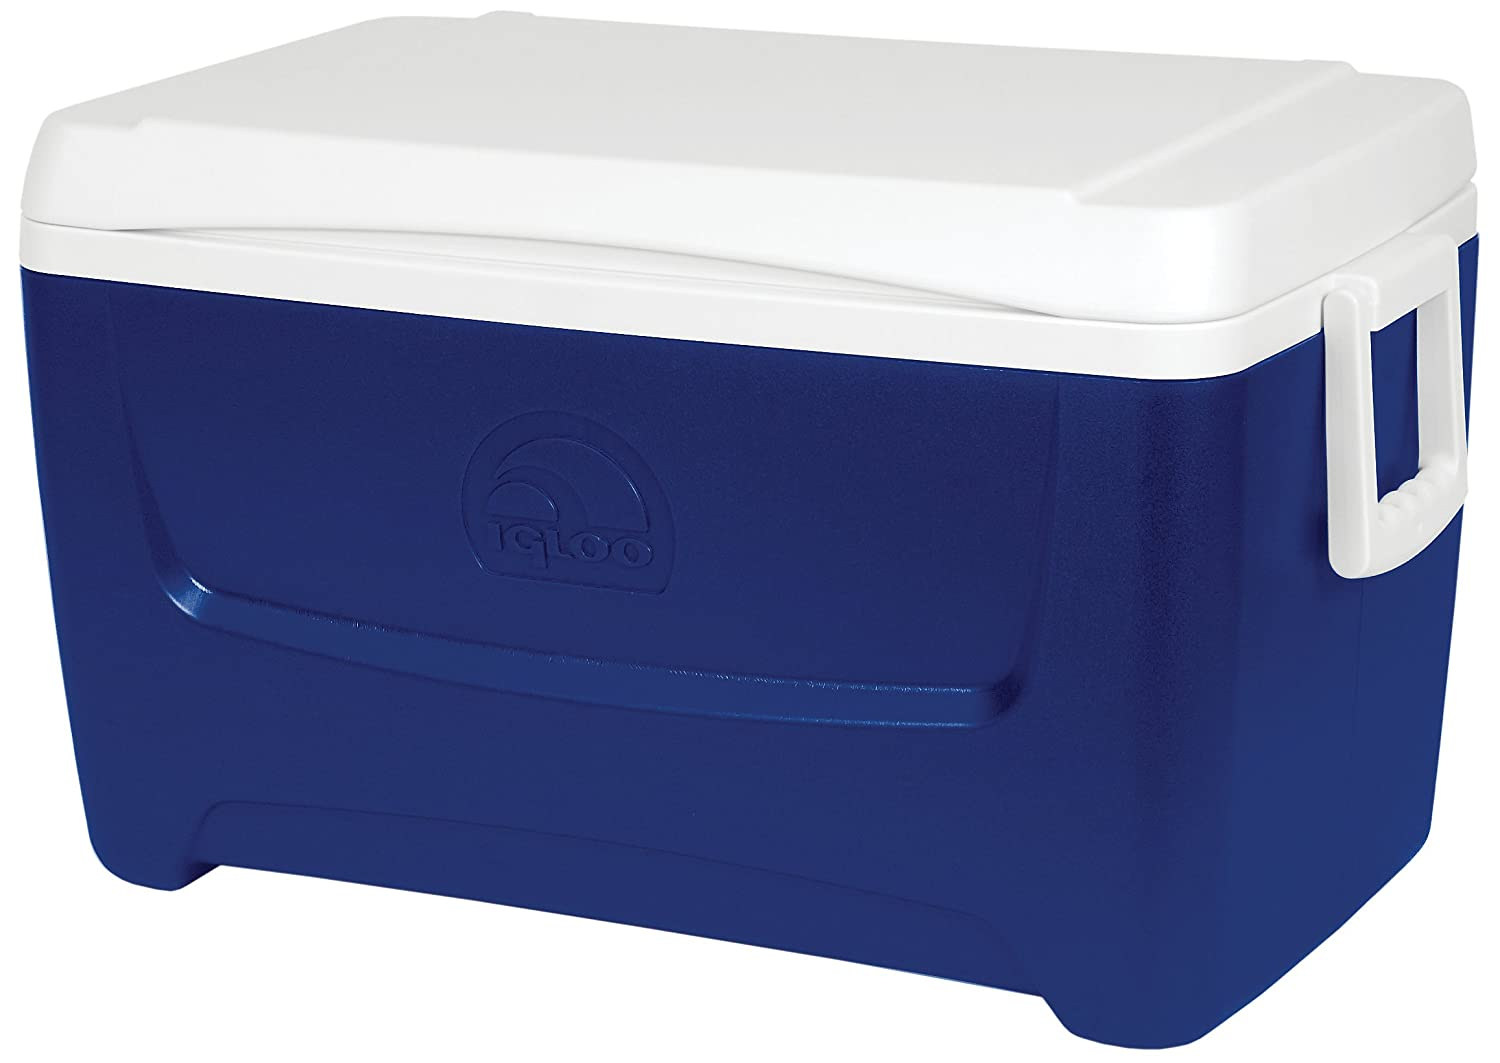 Igloo Island Breeze 48 Quart Cooler- Majestic Blue best cooler for the money 2019